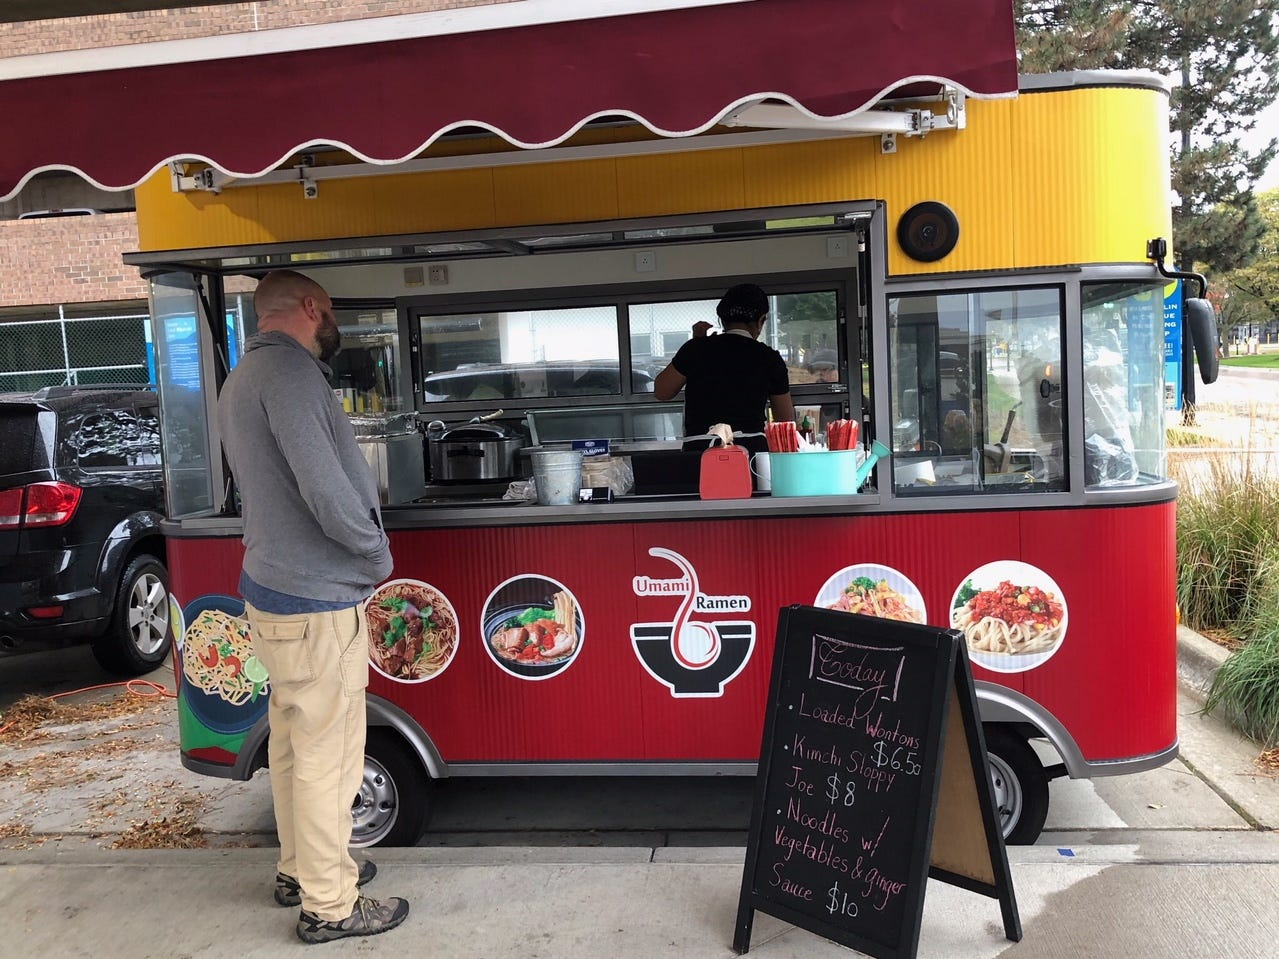 Umami Ramen showcased the new food truck at Festival Market Square during Fall into the Arts on Friday.